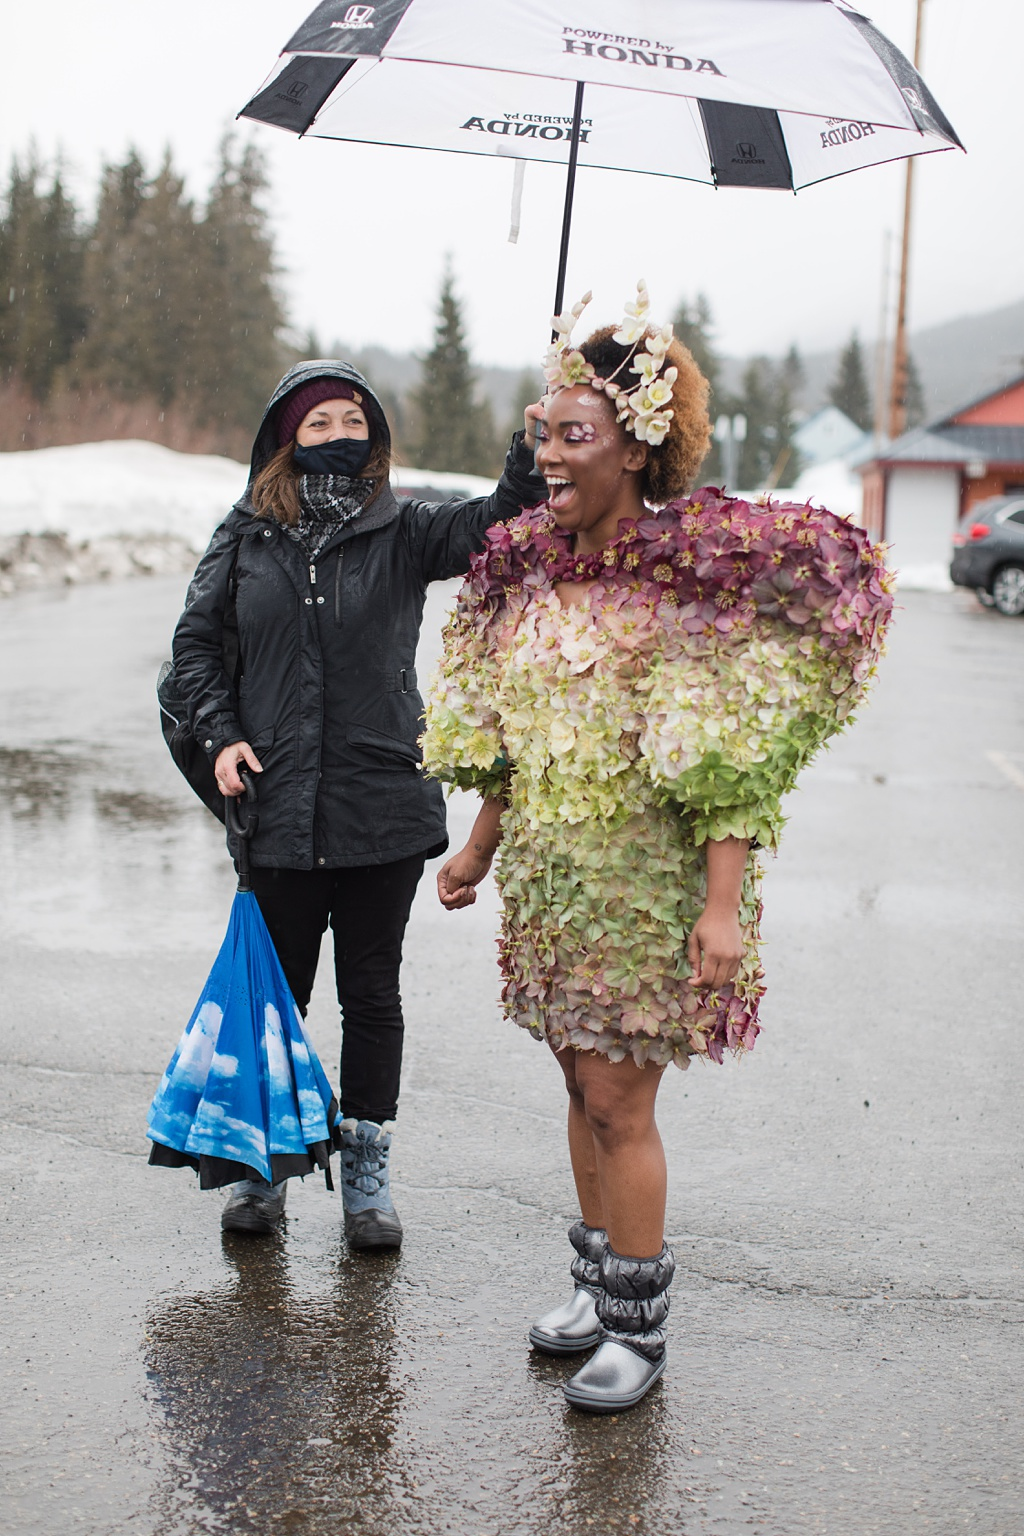 Pamela Youngsman holds an umbrella for model Tasia in the hellebore couture dress